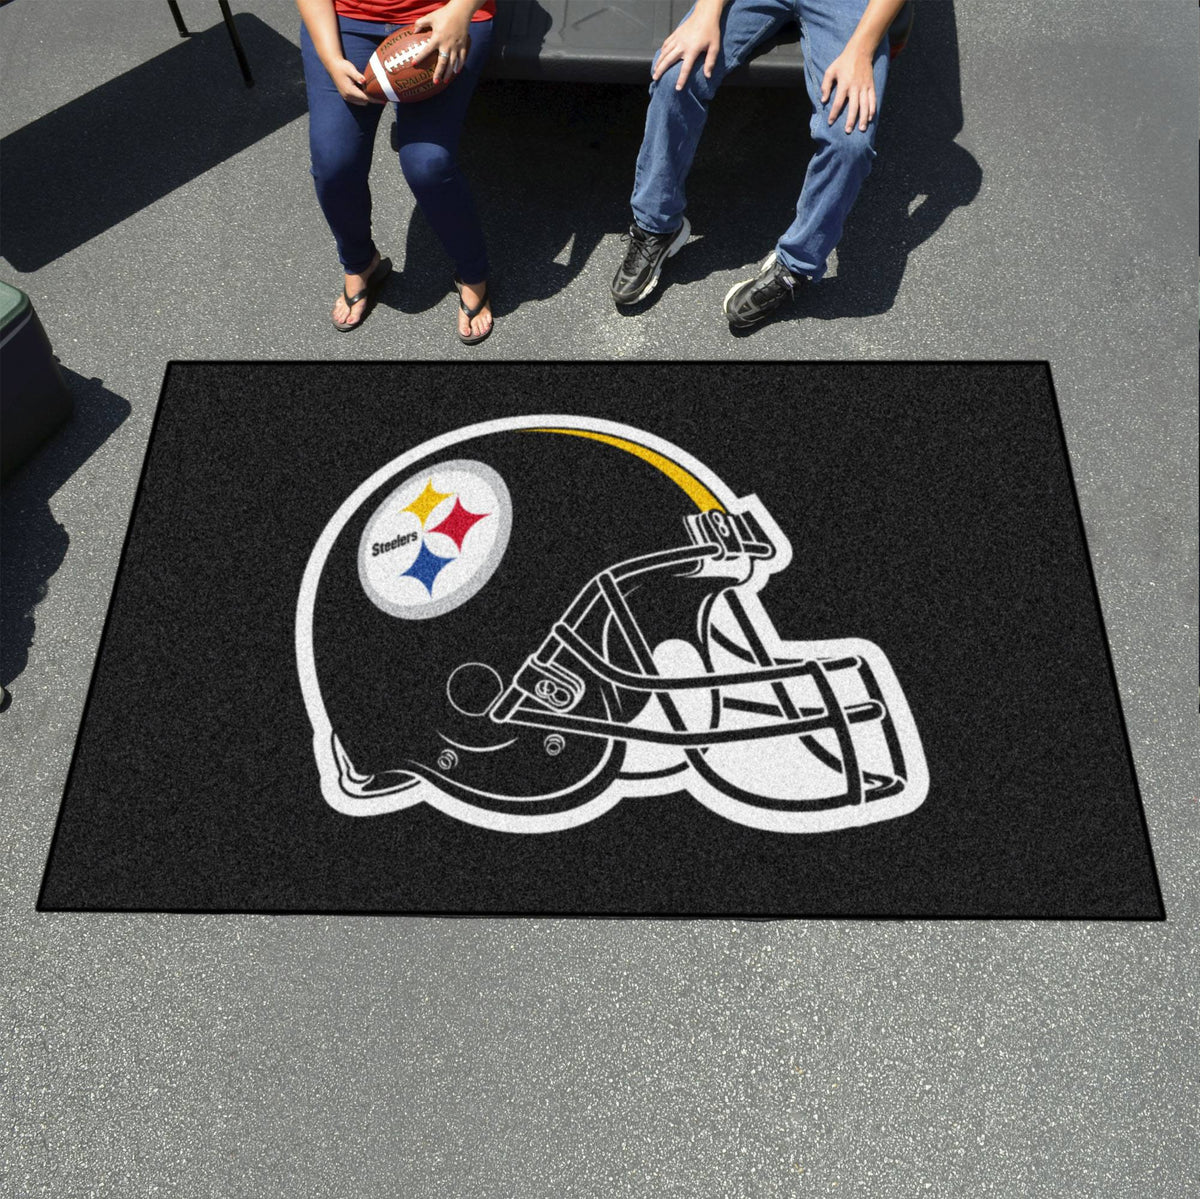 "NFL - Ulti-Mat, 59.5"" x 94.5"" NFL Mats, Rectangular Mats, Ulti-Mat, NFL, Home Fan Mats Pittsburgh Steelers"